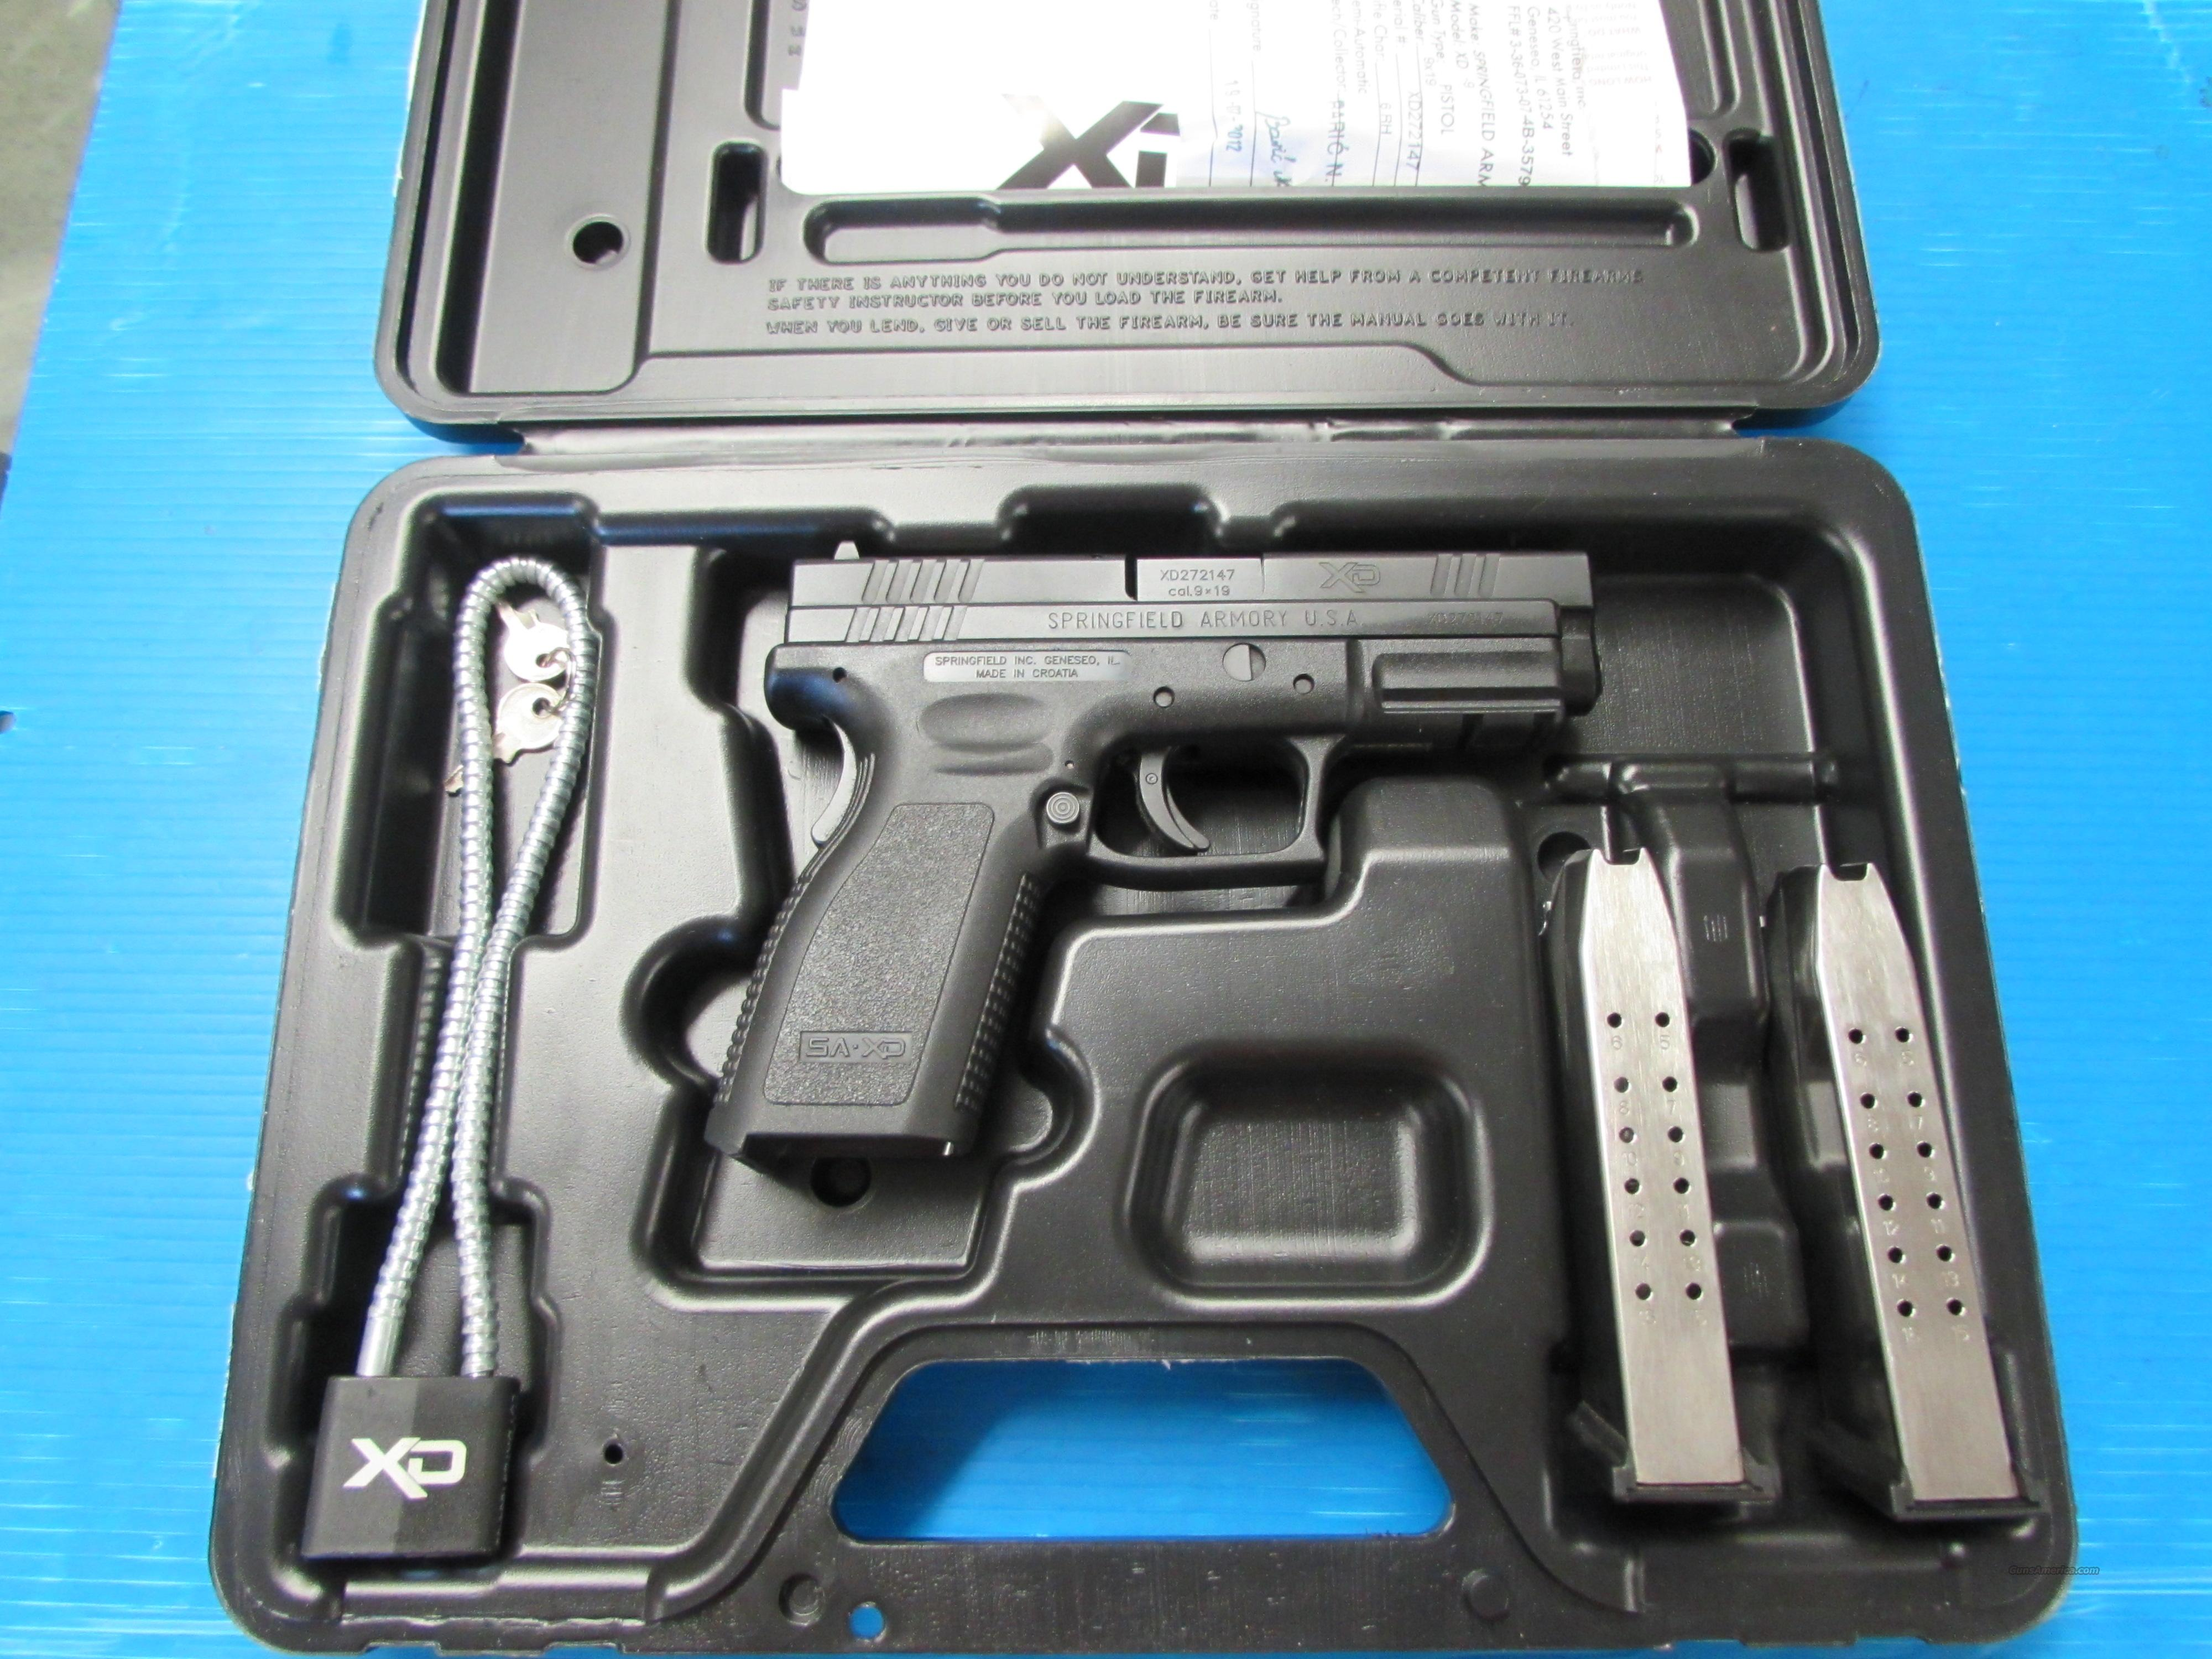 SPRINGFIELD ARMORY XD-9 DDD-11-16  Guns > Pistols > Springfield Armory Pistols > XD (eXtreme Duty)